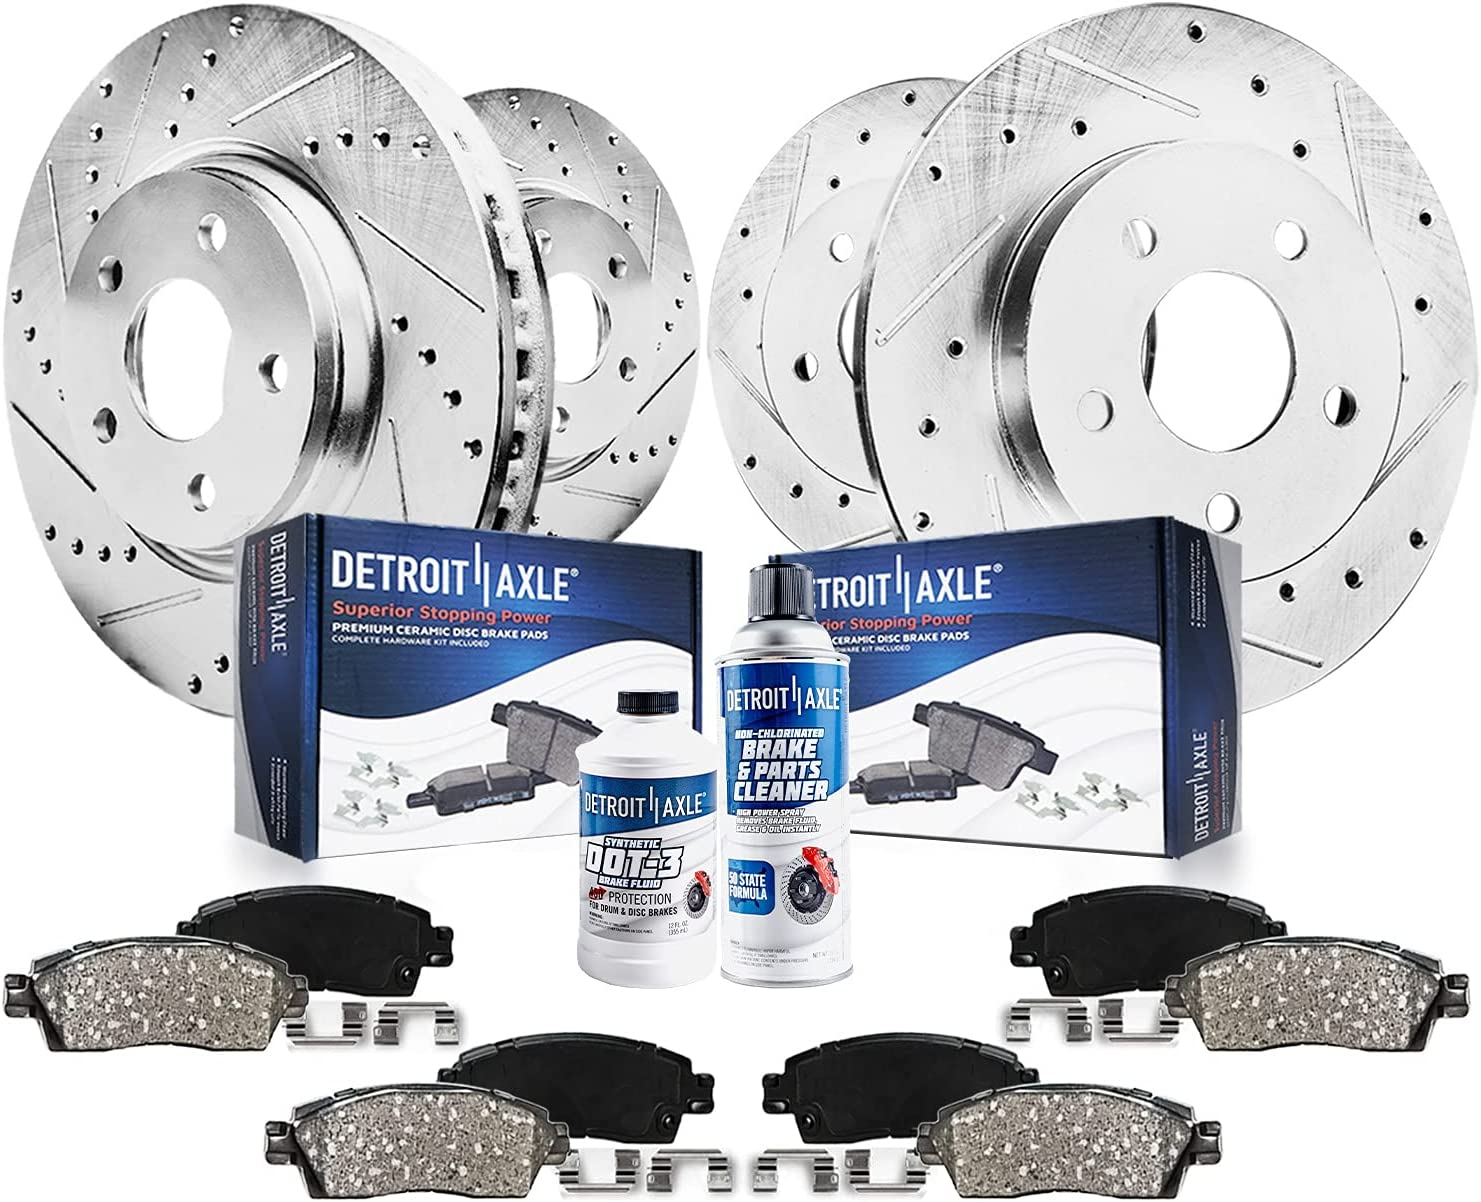 Detroit Award Axle - All 4 Front 35% OFF B Slotted Drilled Disc and Rear